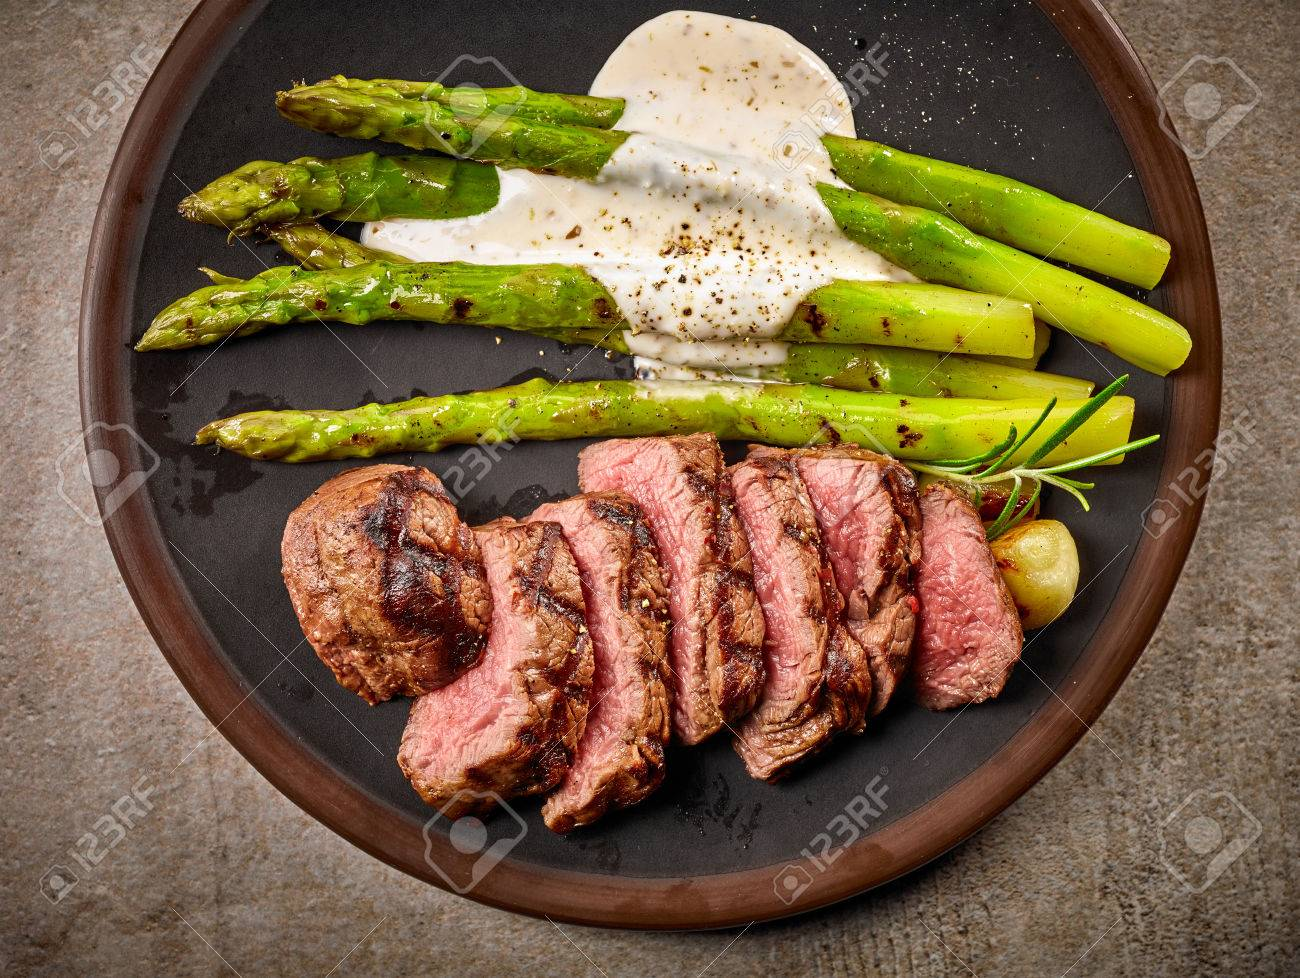 Portion Of Sliced Beef Steak And Asparagus On Dark Plate Top Stock Photo Picture And Royalty Free Image Image 58394246